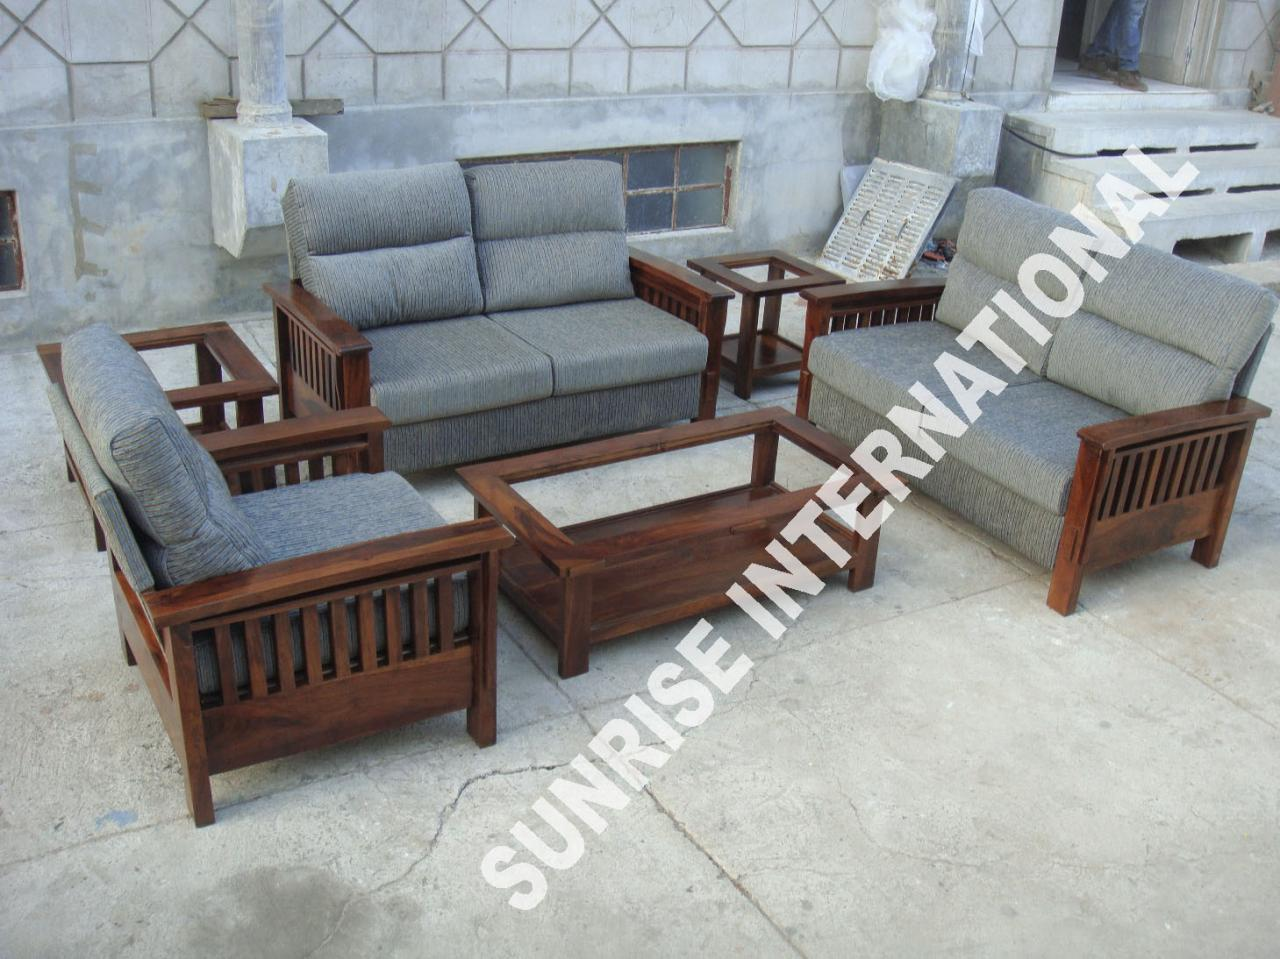 Bamboo Sala Set Price Wooden Sala Set In The Philippines Sunrise International